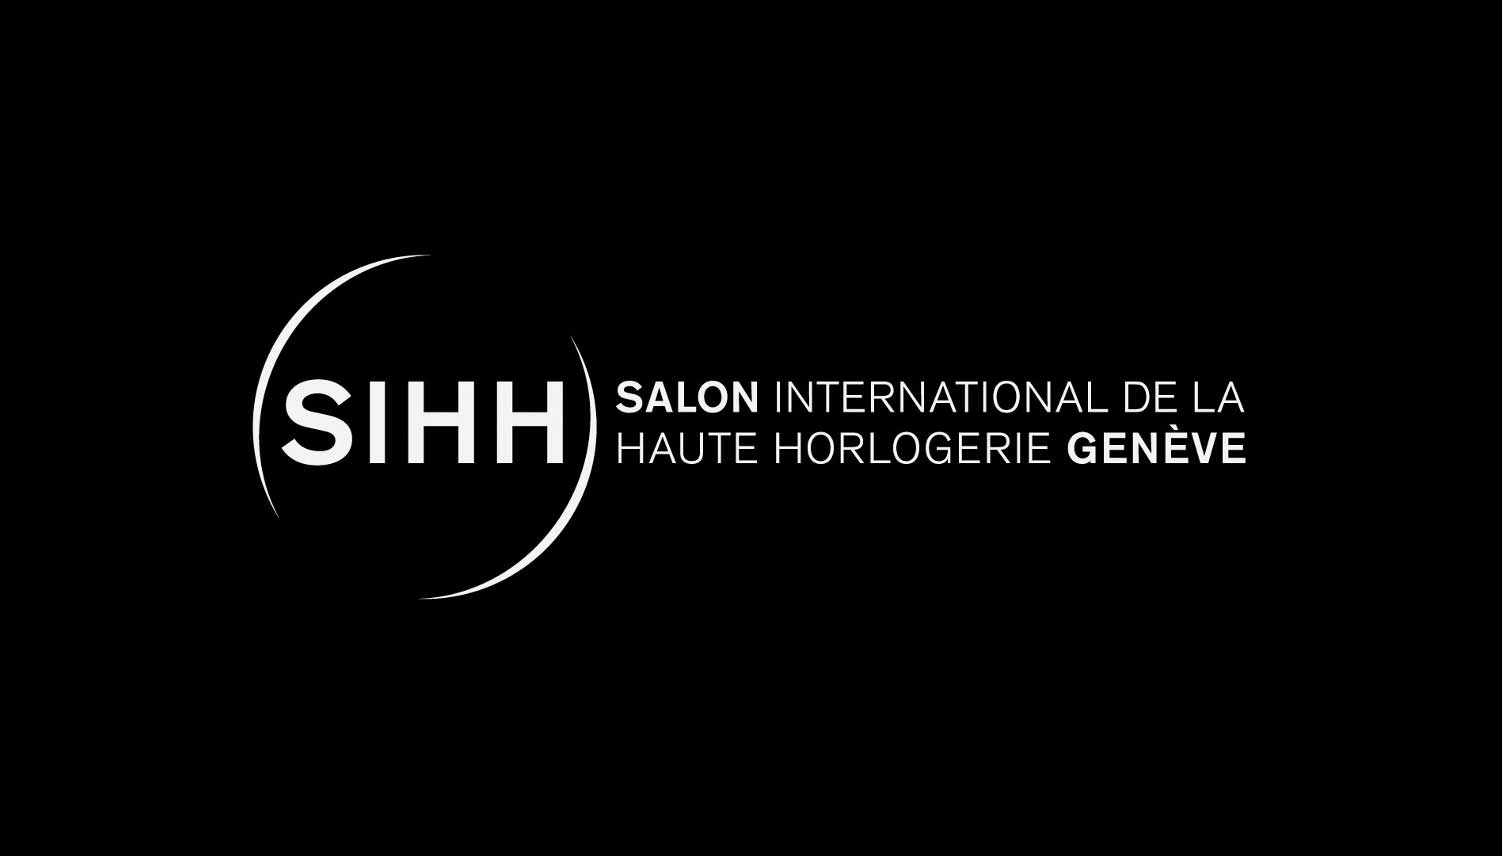 Original image from SIHH